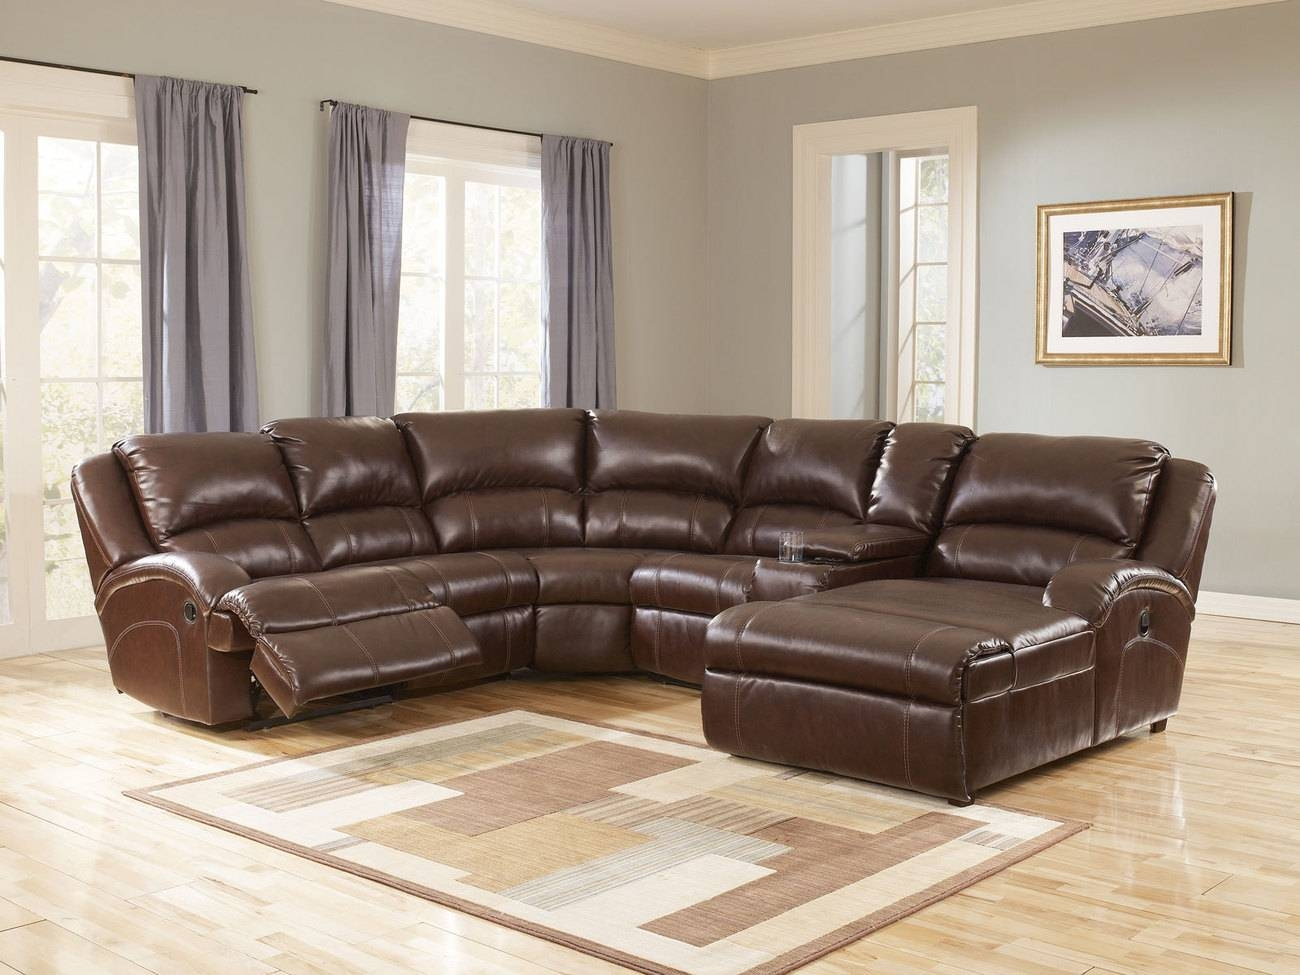 Furniture: Incredible Style Sectional Reclining Sofas For Your in Sectional Sofas With Electric Recliners (Image 11 of 30)